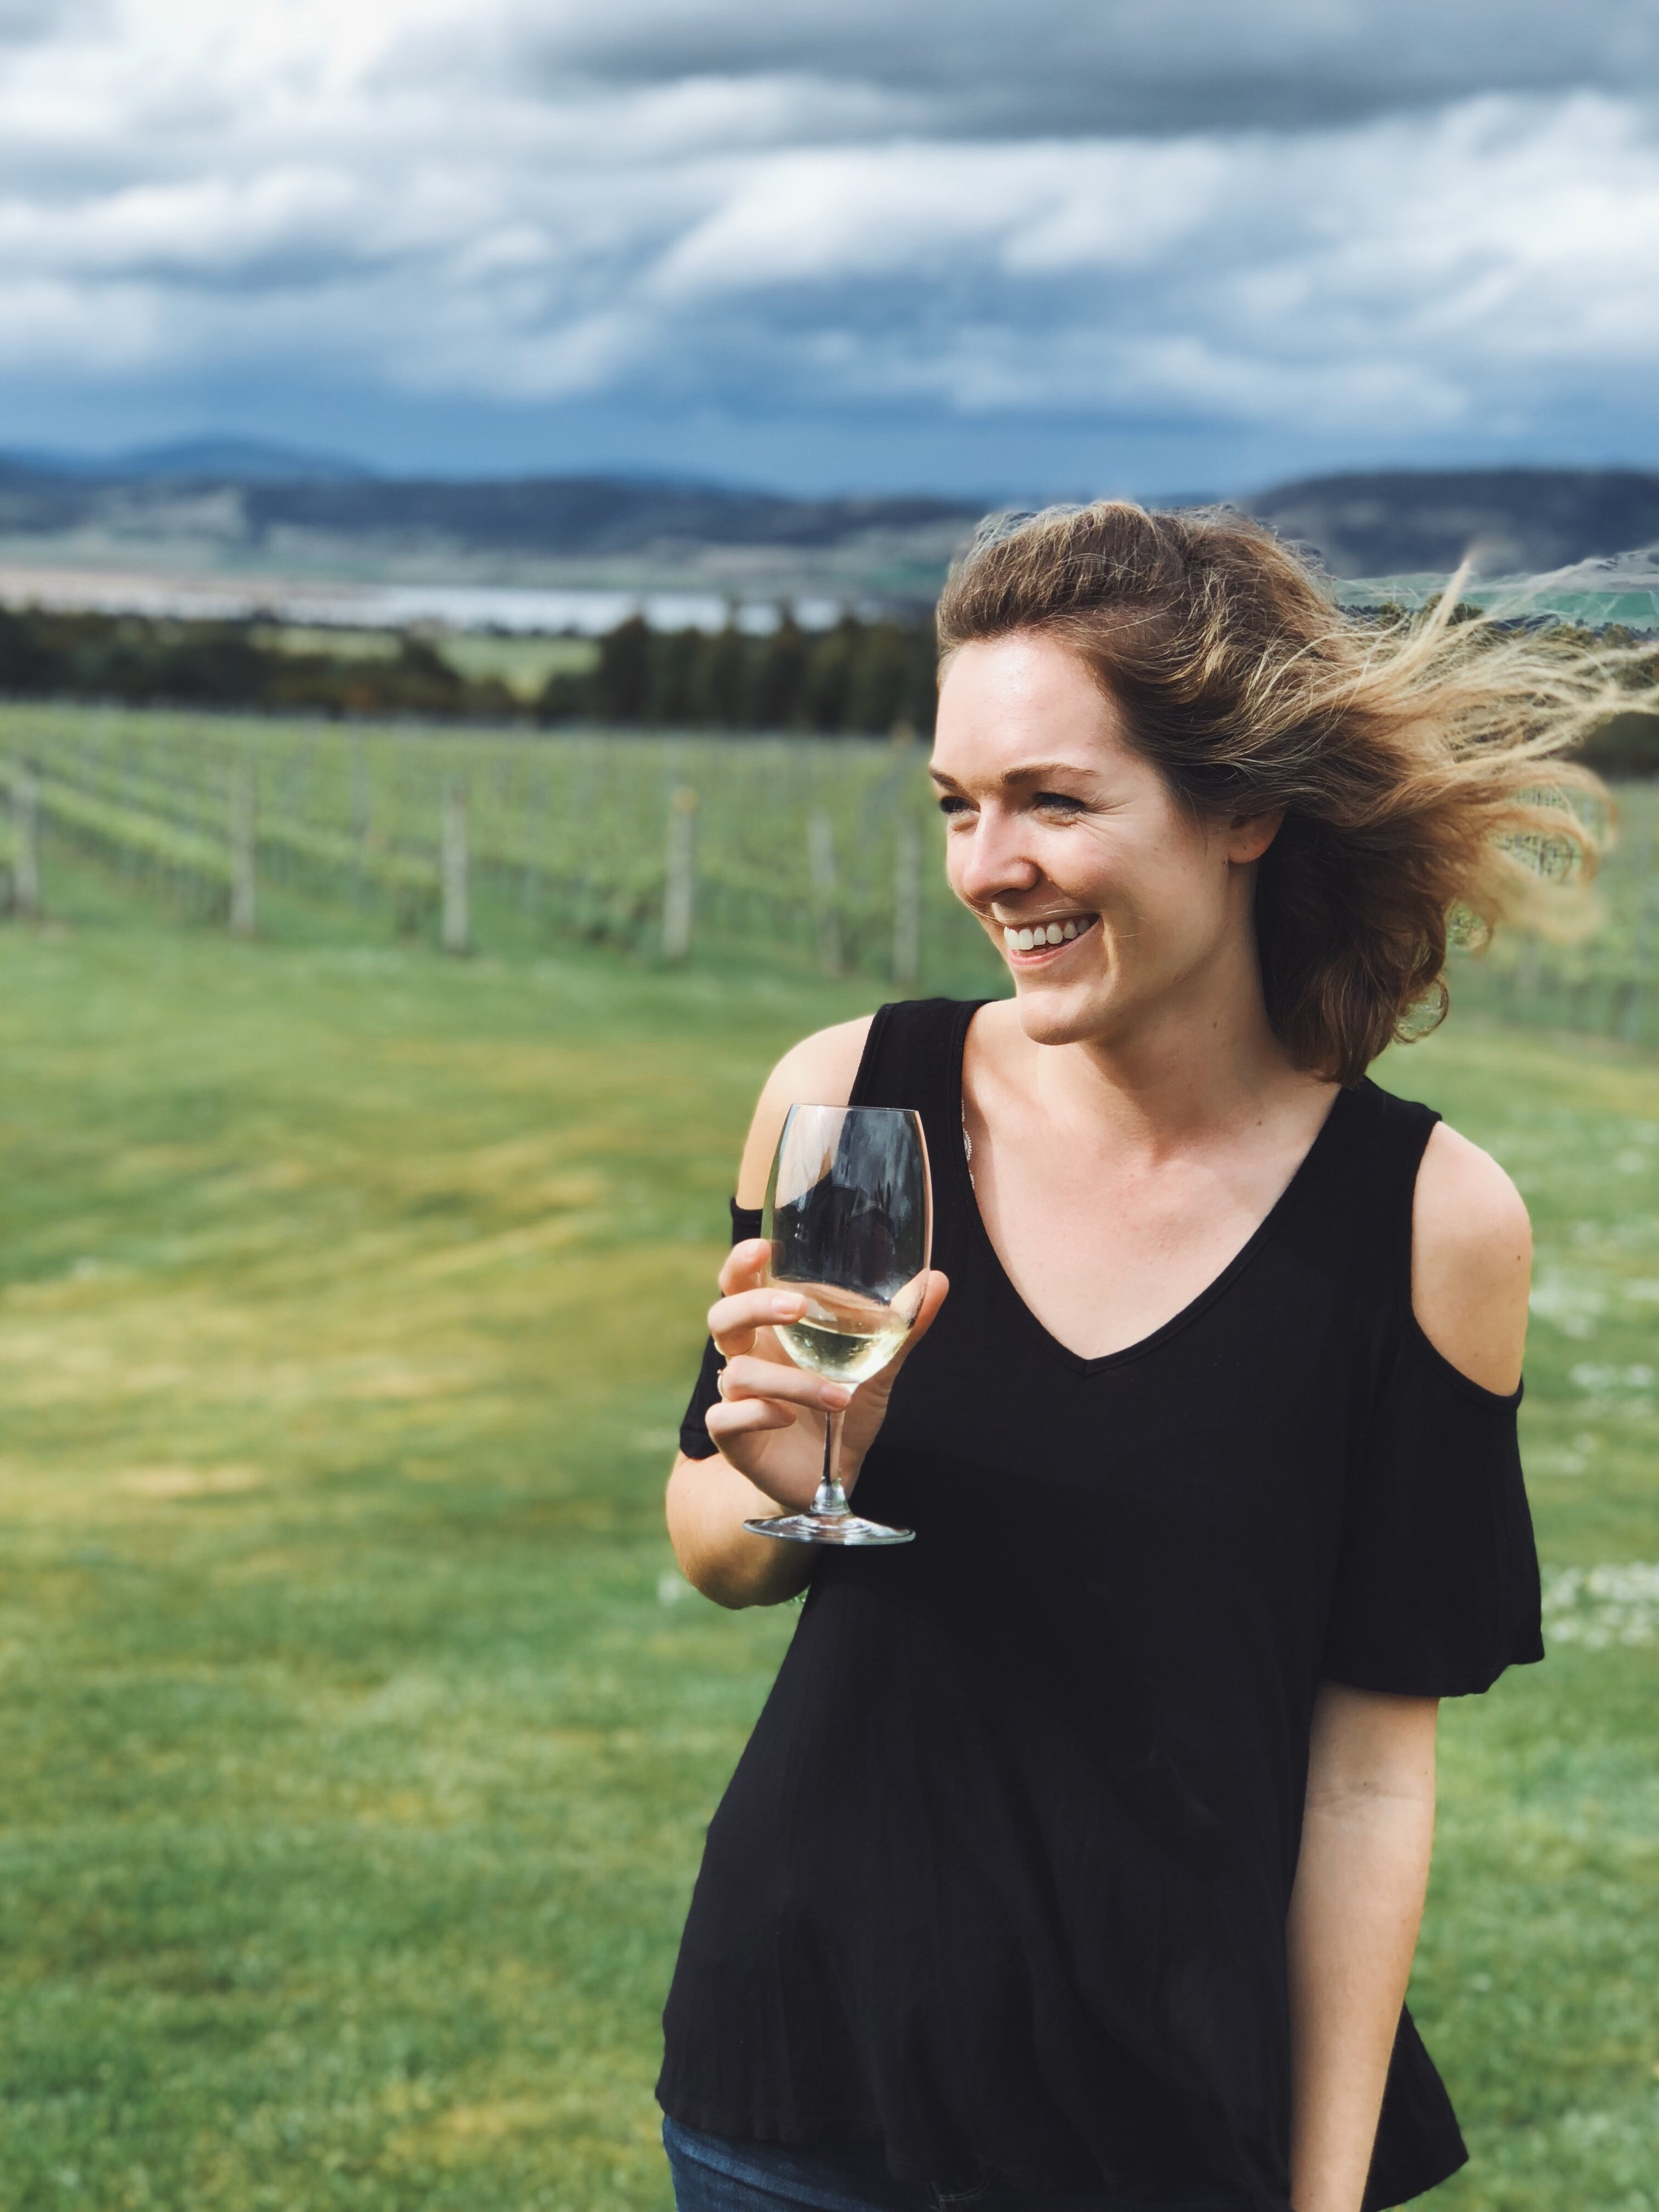 - There are a bunch of wineries between Hobart and the airport, so on our way out of town, we stopped at Frogmore Creek Winery. They had a long tasting list and we didn't have much time! Definitely recommend a stop there. How gorgeous are those oysters?!